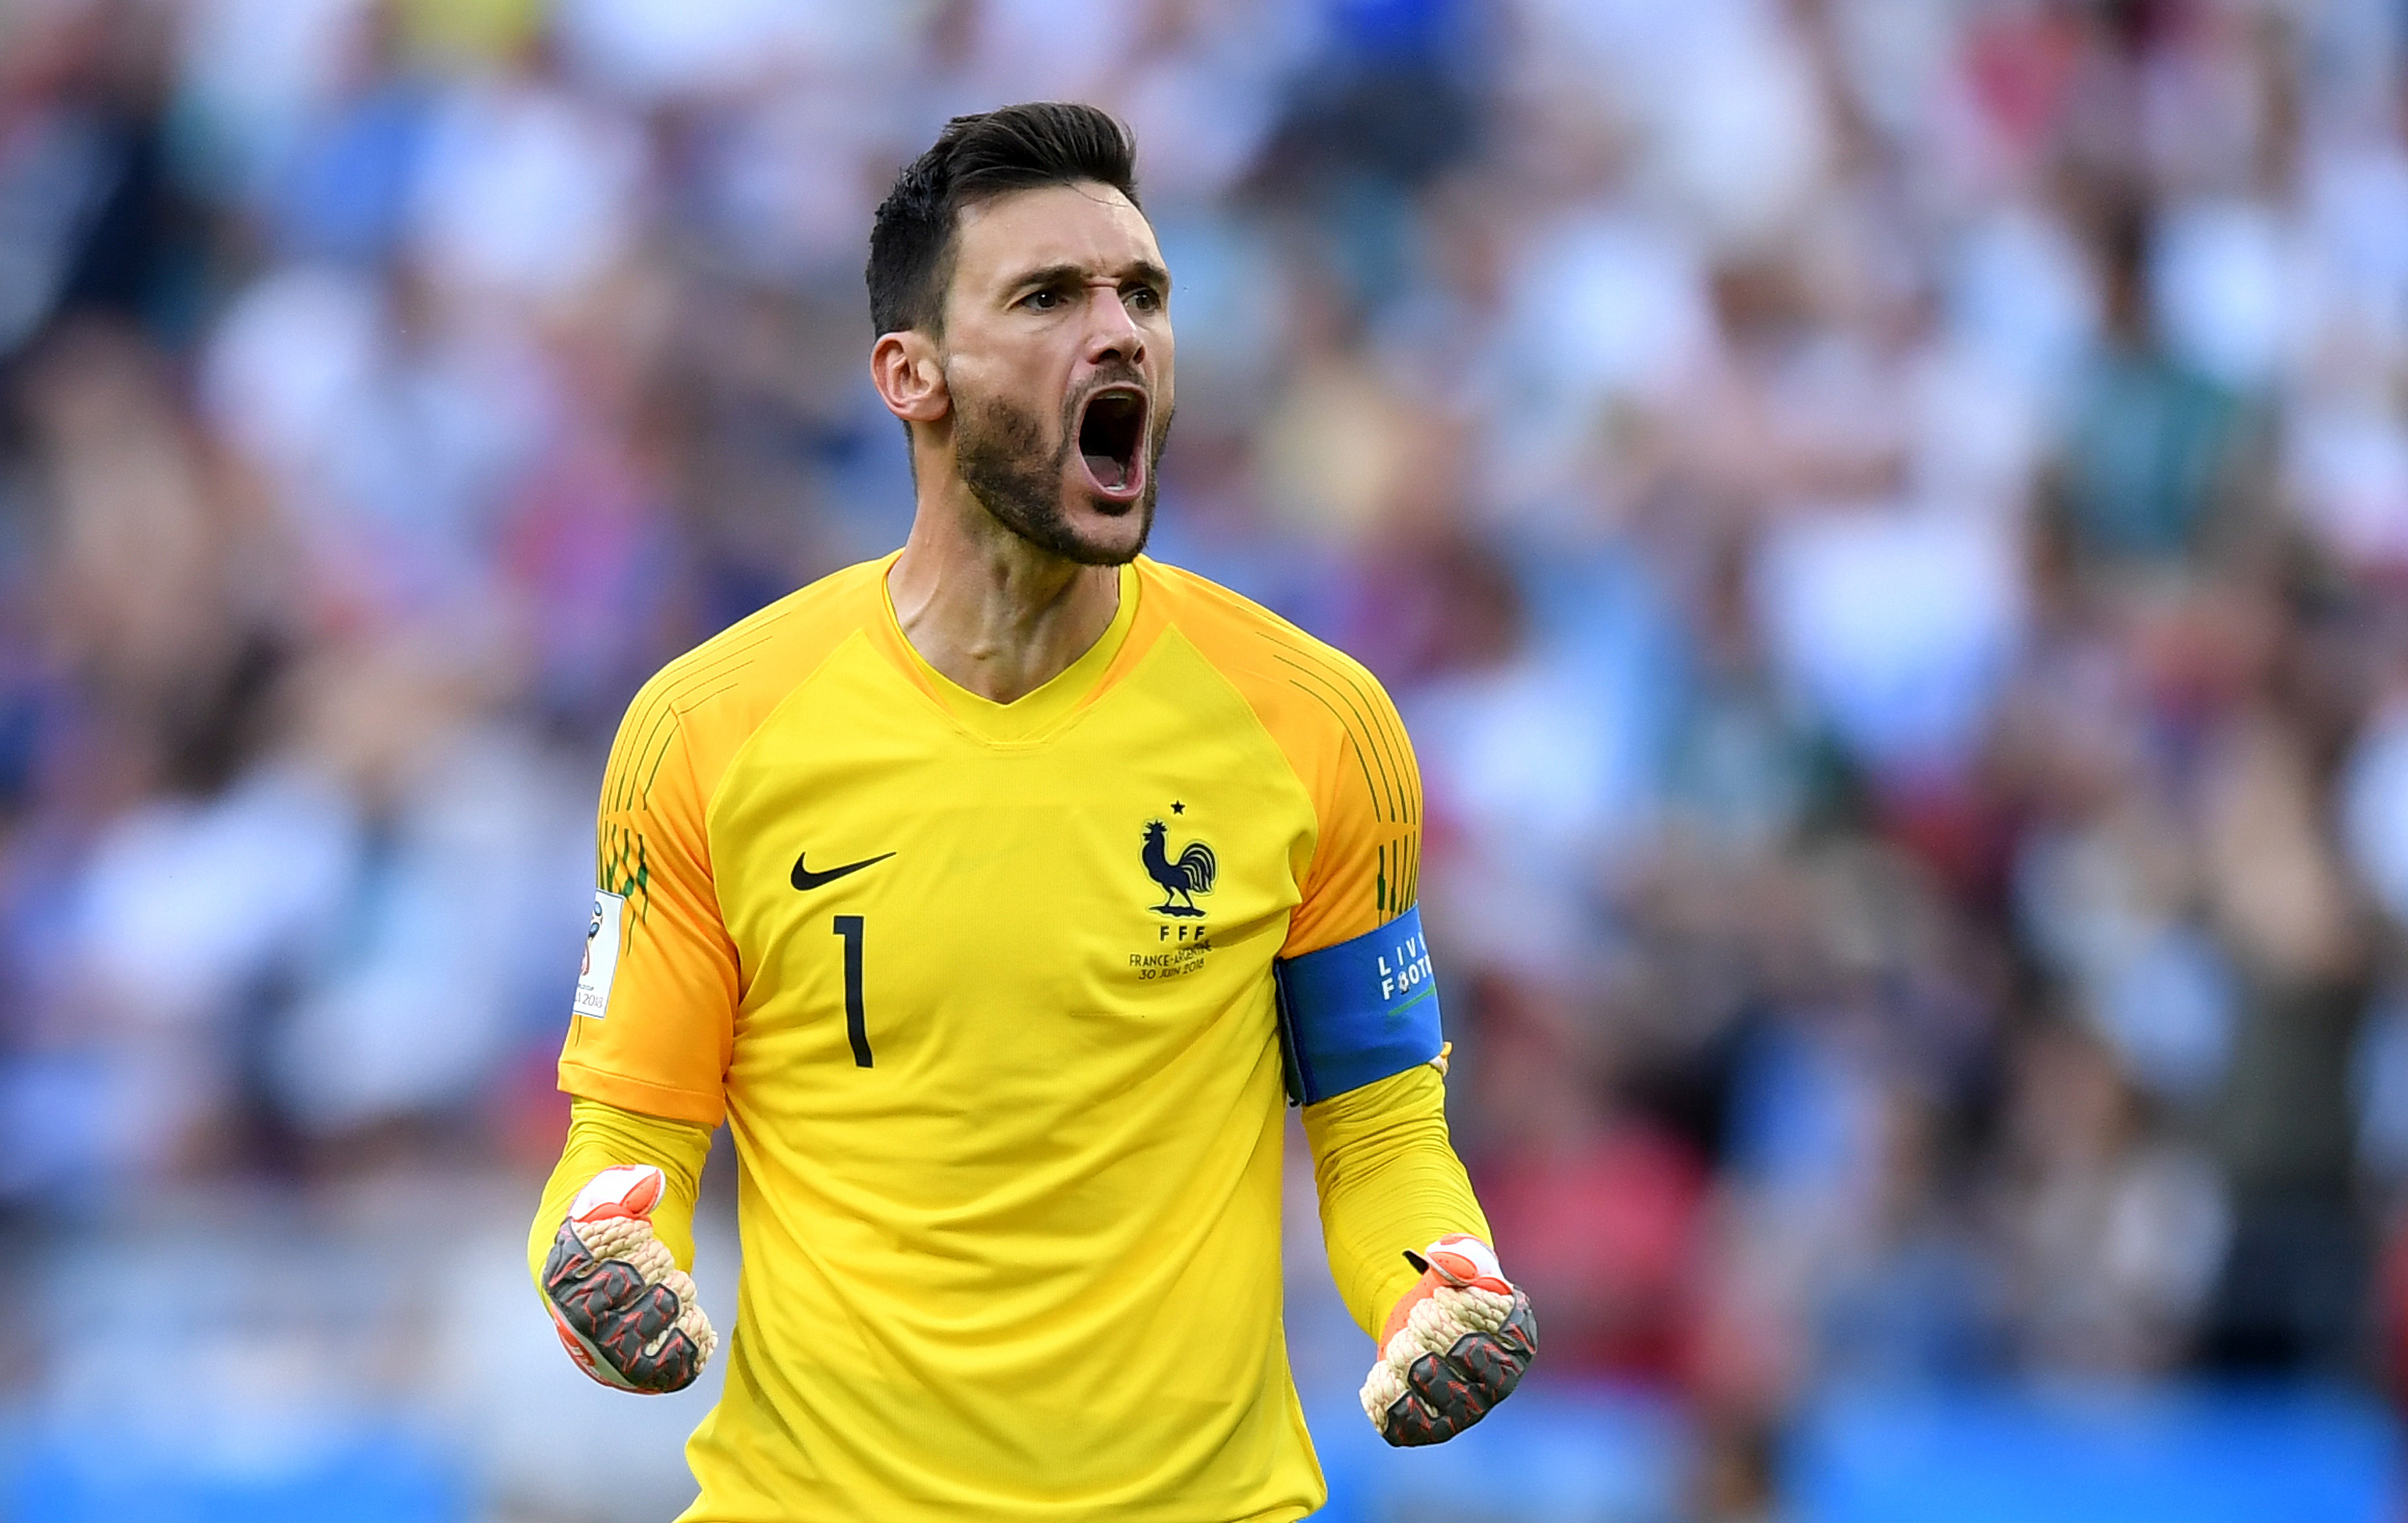 Lloris still Spurs captain despite drink drive conviction - Pochettino